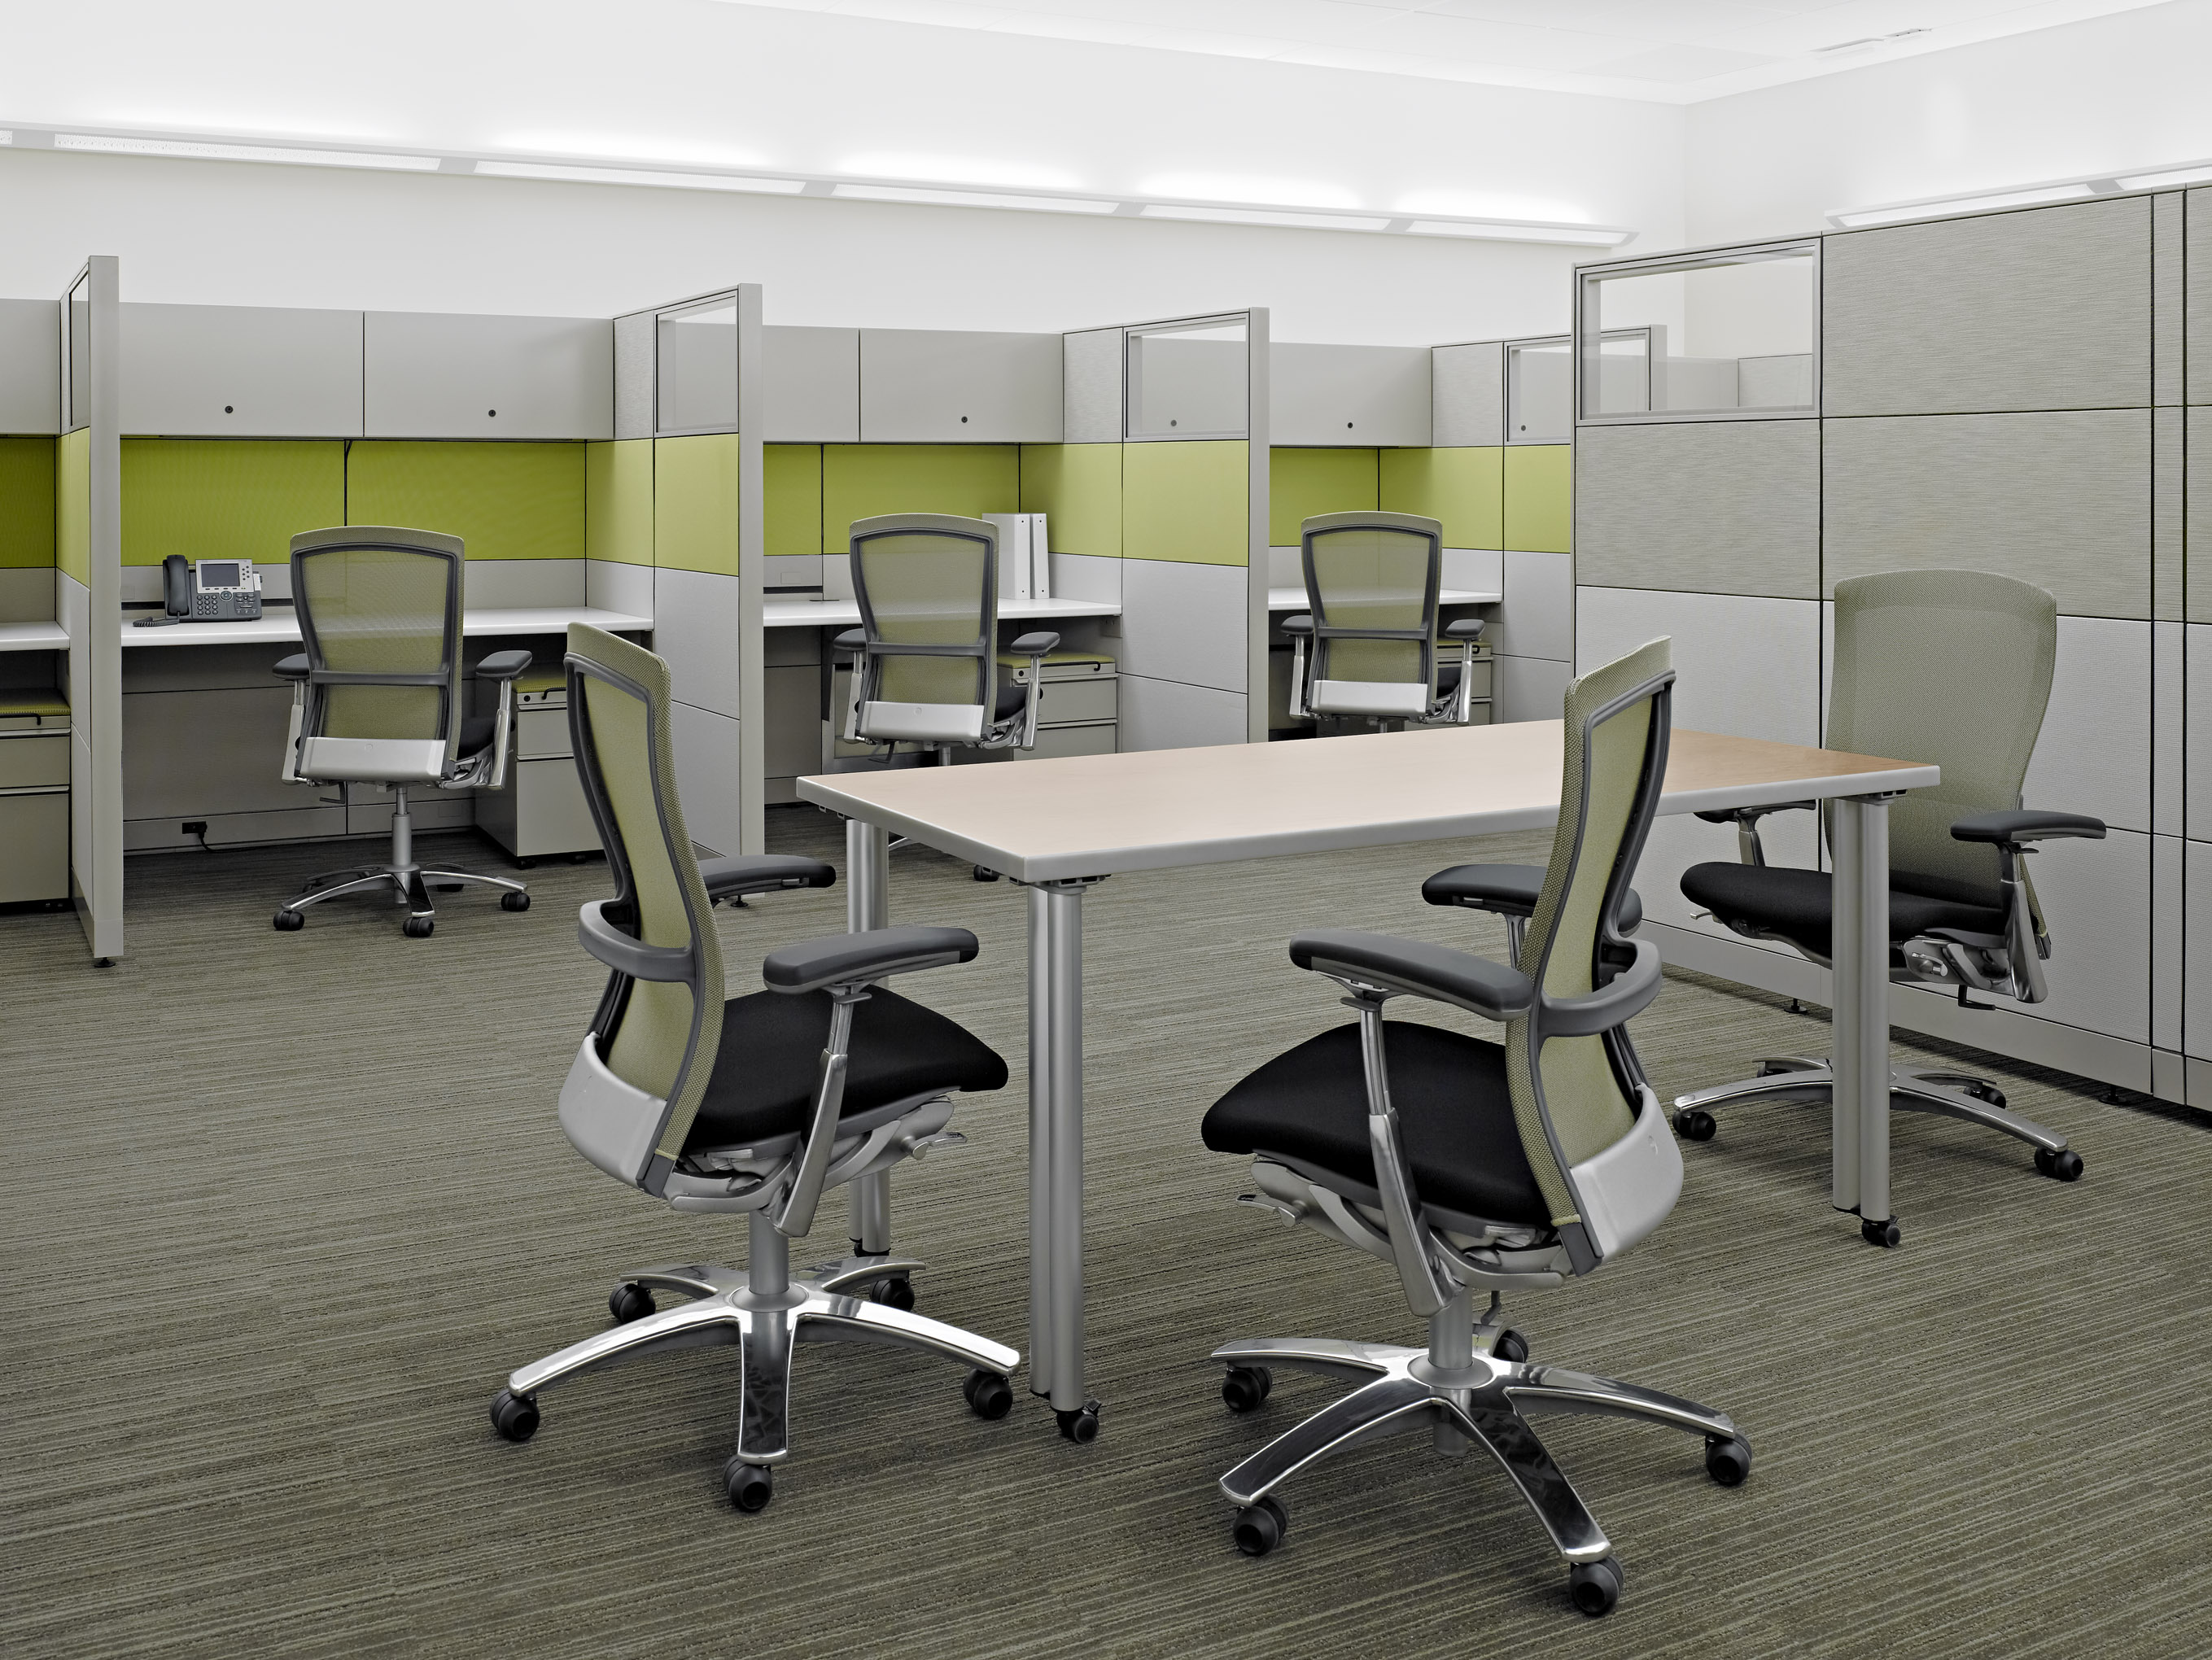 office furniture archivos On muebles de oficina knol